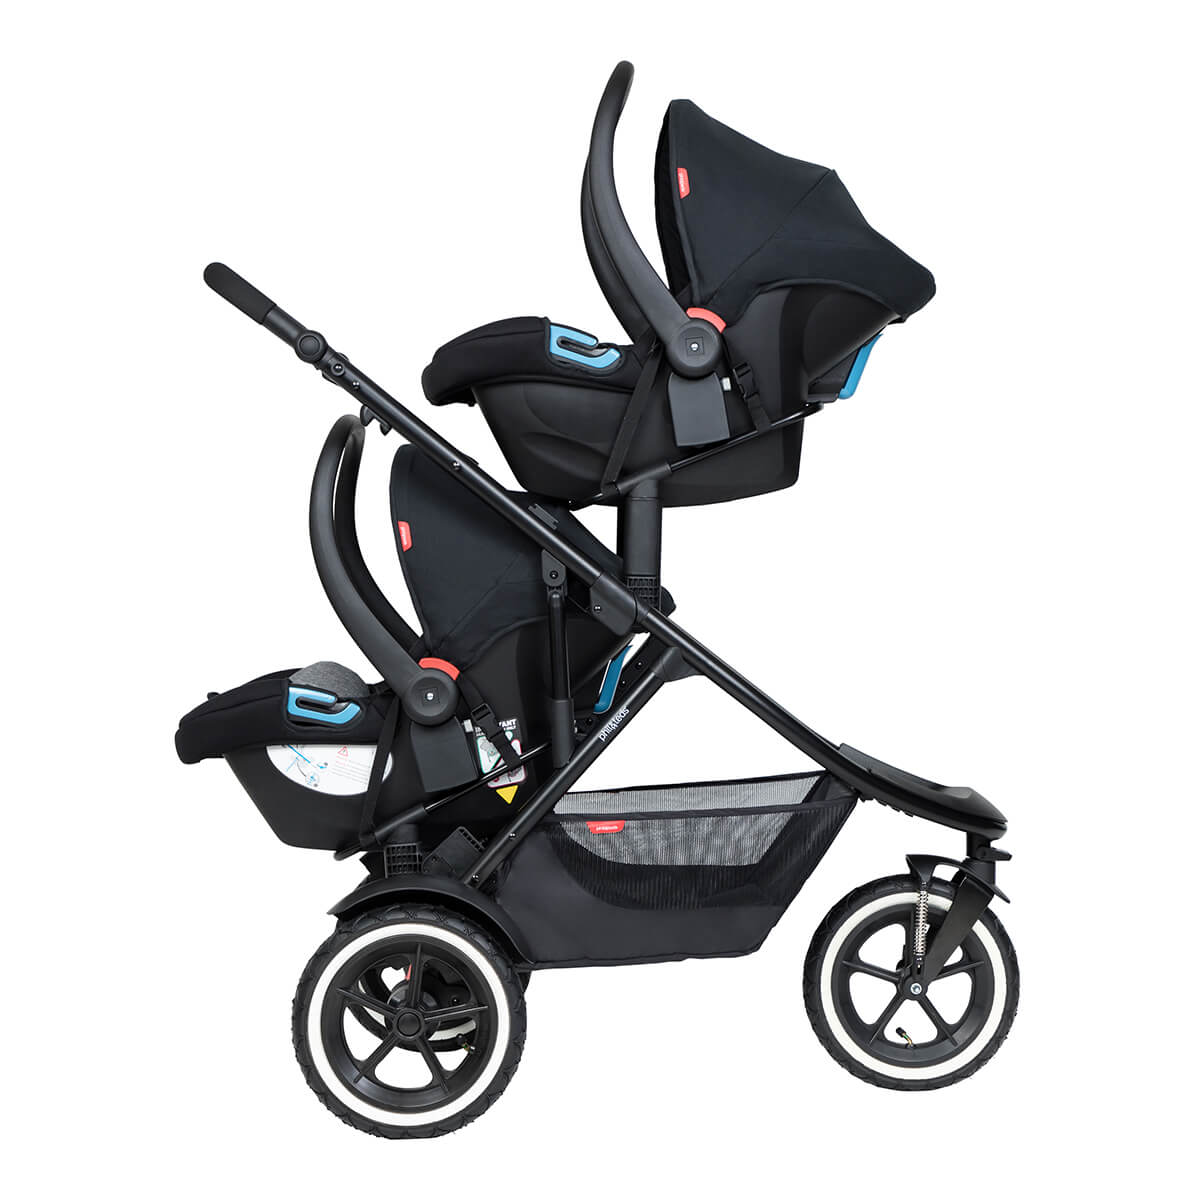 https://cdn.accentuate.io/4509866590305/19793940447402/philteds-sport-buggy-with-double-alpha-travel-system-v1626485325059.jpg?1200x1200